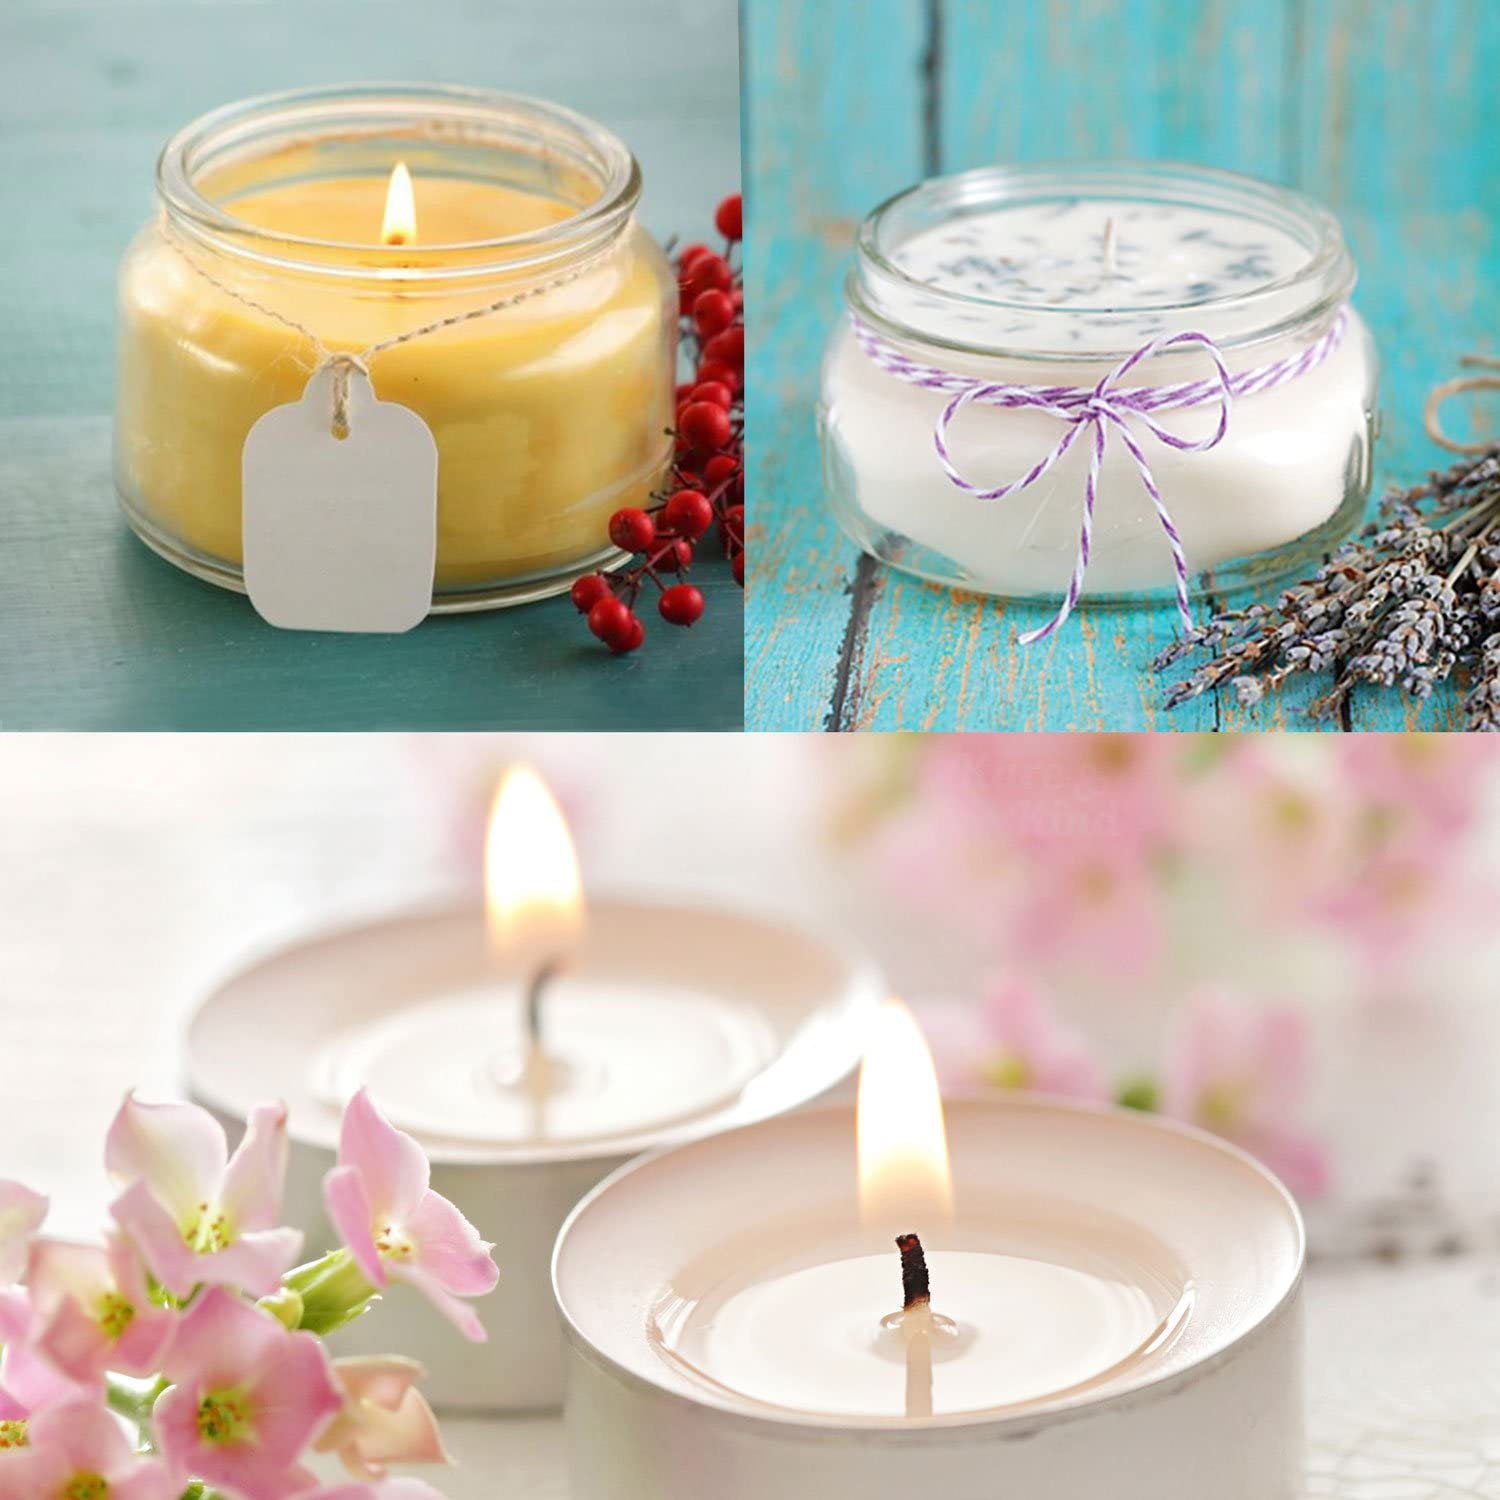 Easy Positioning Cotton Threads Woven with Paper Contains No Lead 50 Stickers and 3 Wick Holders Zinc or Other Metals Candle Wick Bundle: 50 Candle Wicks Wicks Coated With Natural Soy Wax